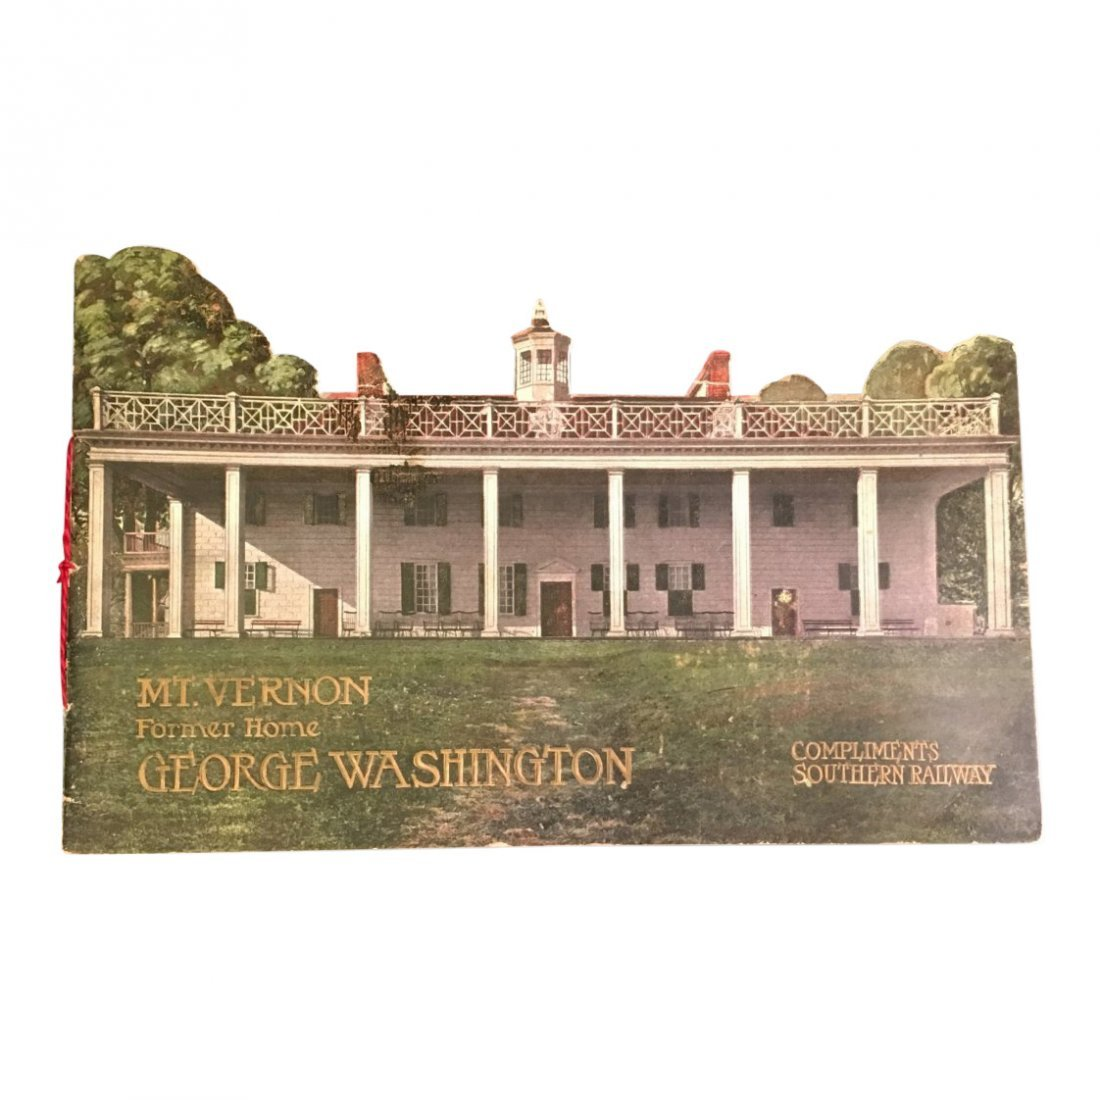 Mount Vernon: Former Home of George Washington, 1906